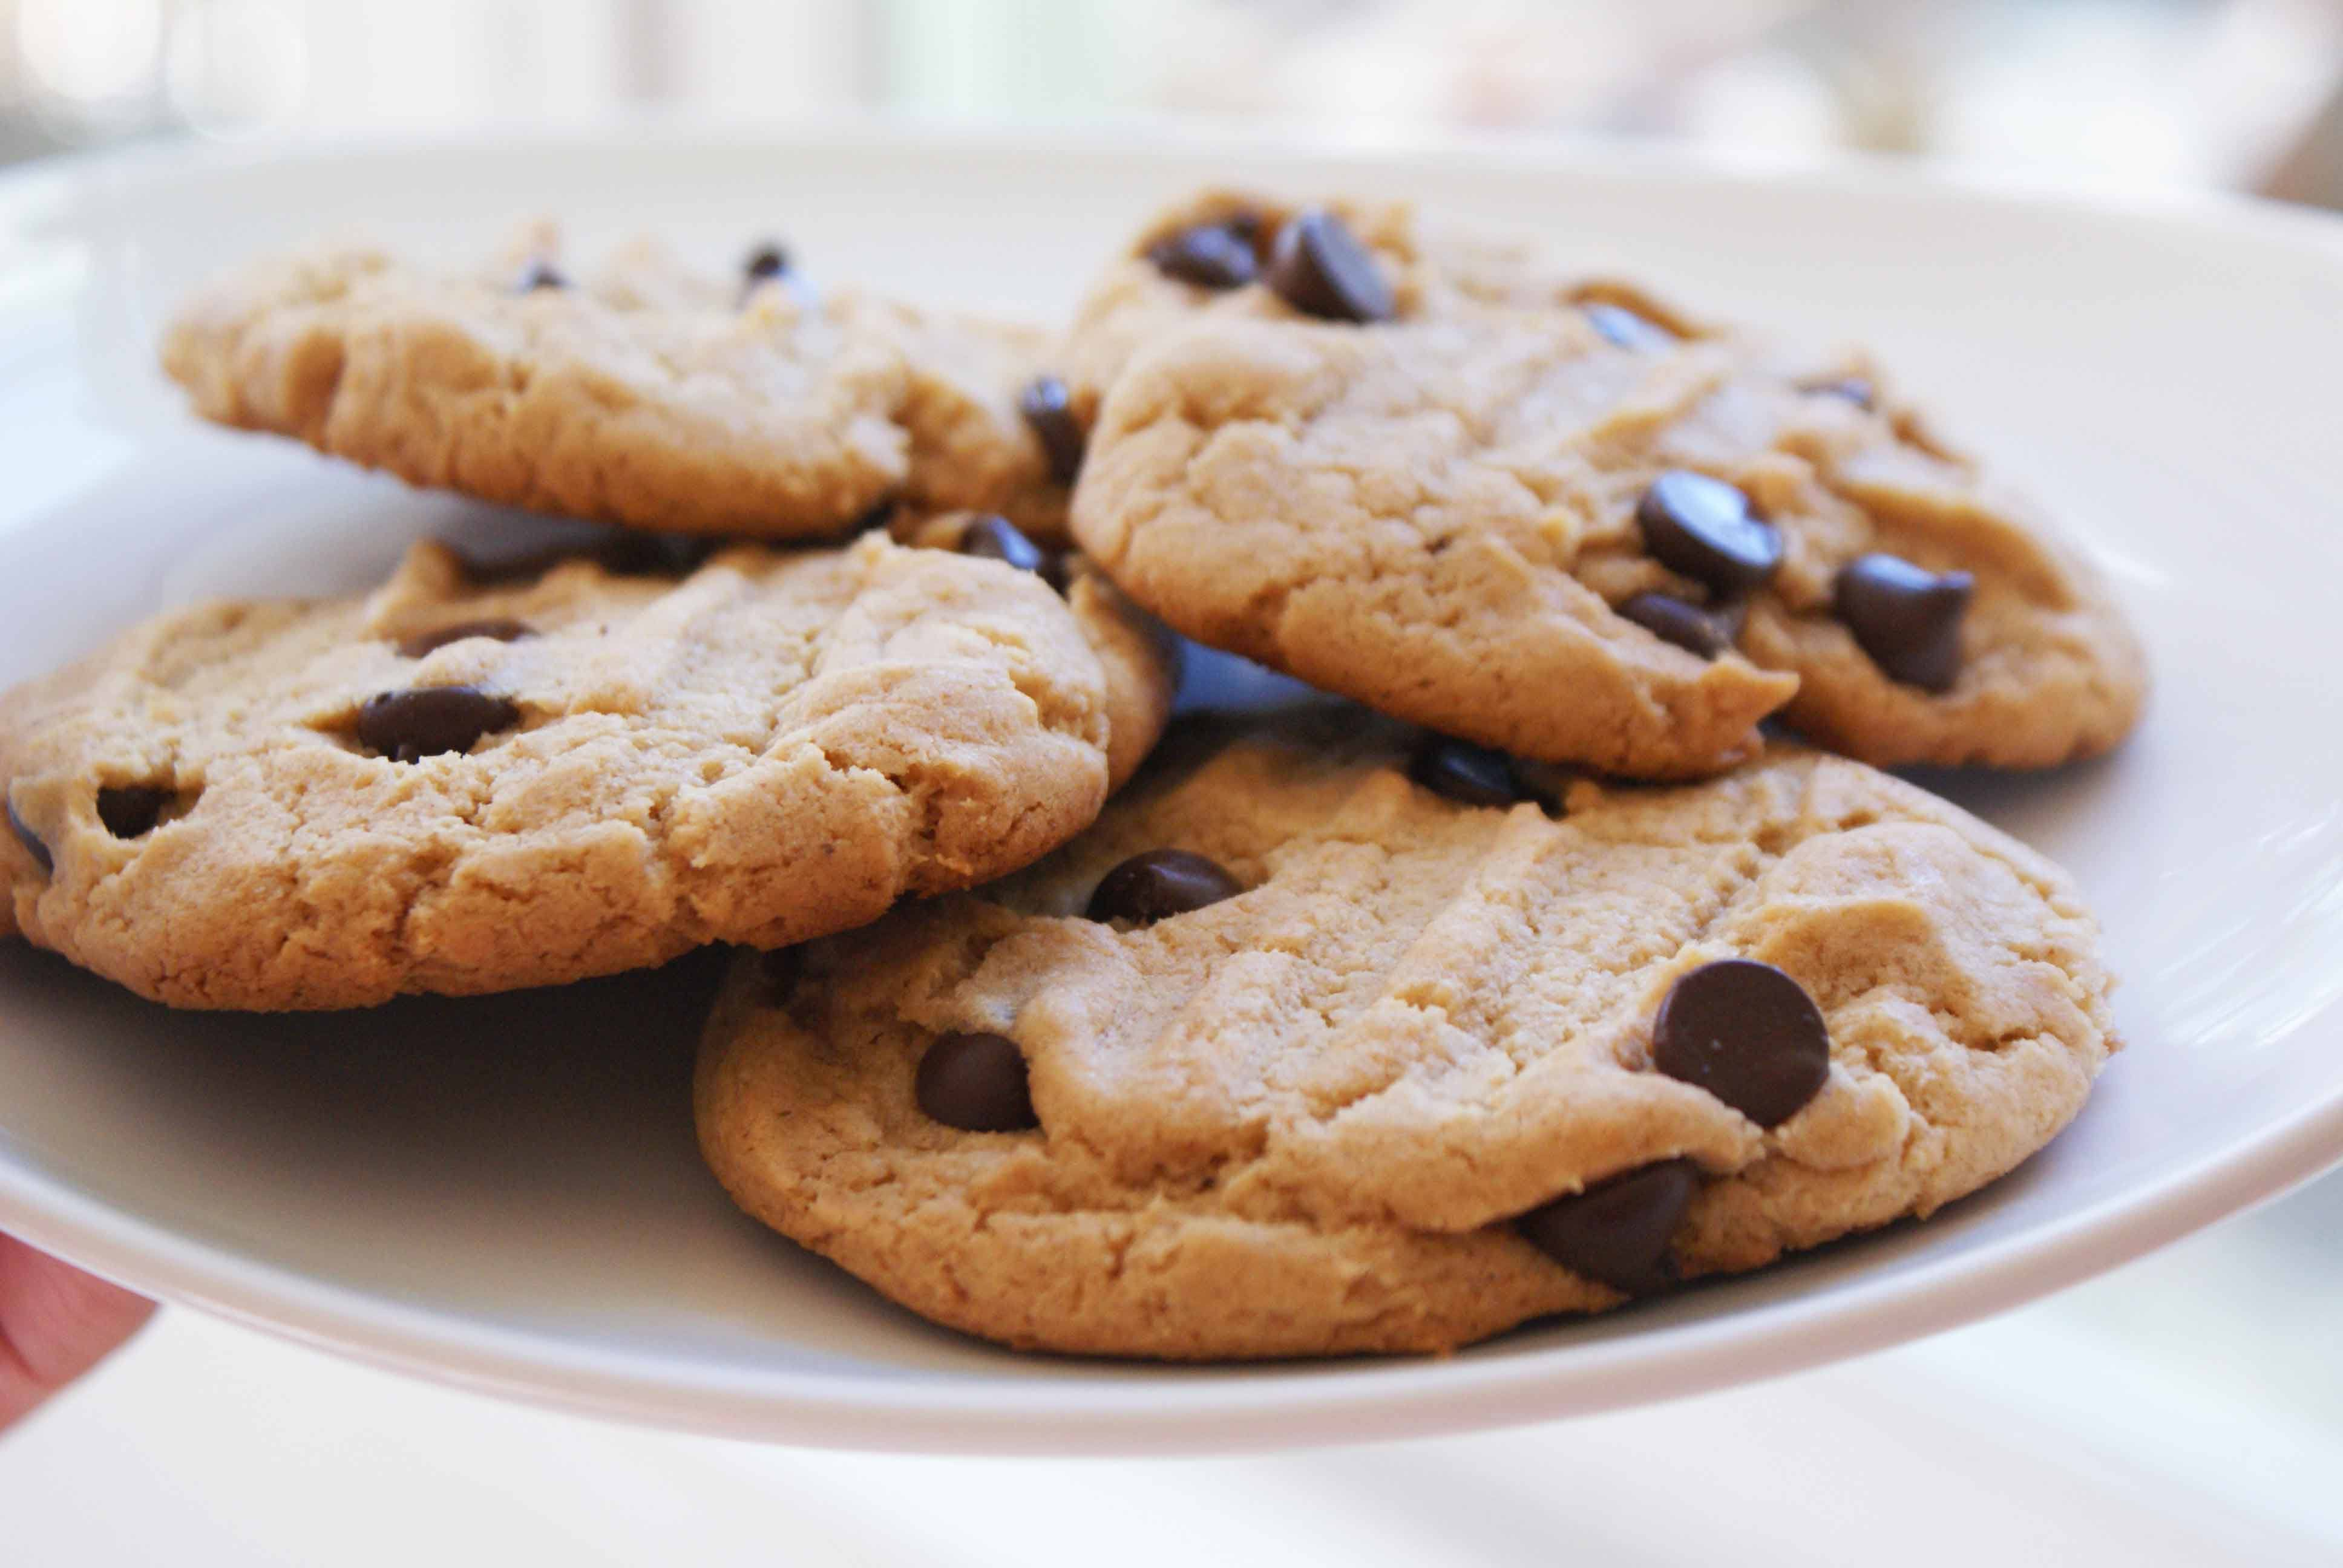 chocolate chip cookie wallpapers high quality download free